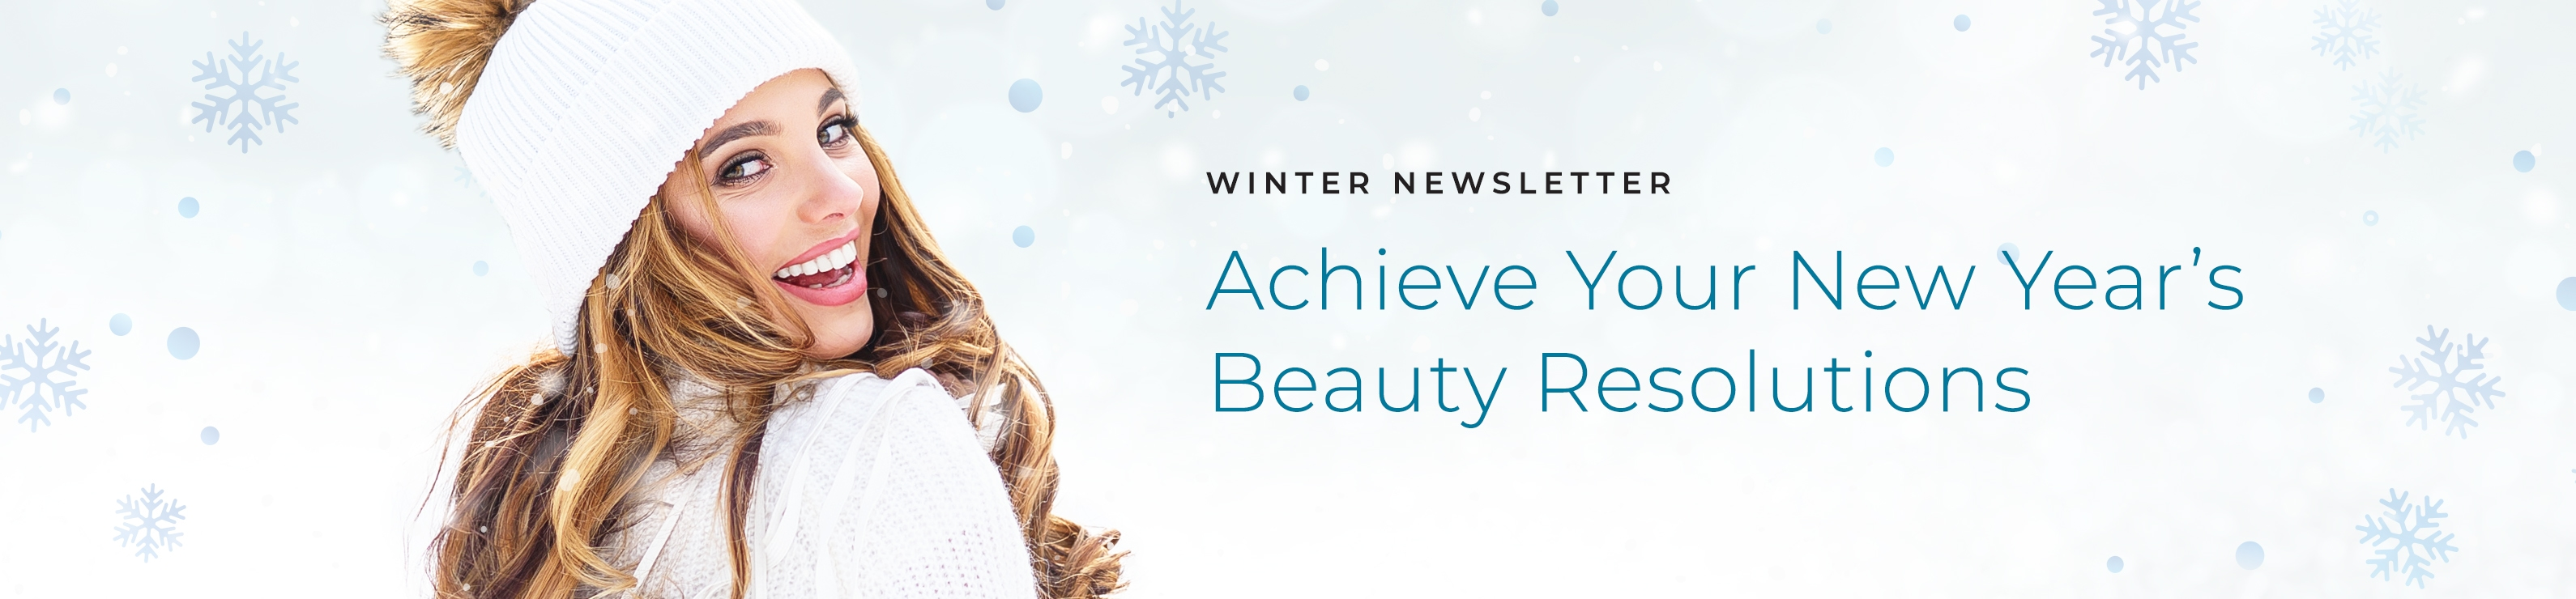 Winter Newsletter – Achieve Your New Year's Beauty Resolutions